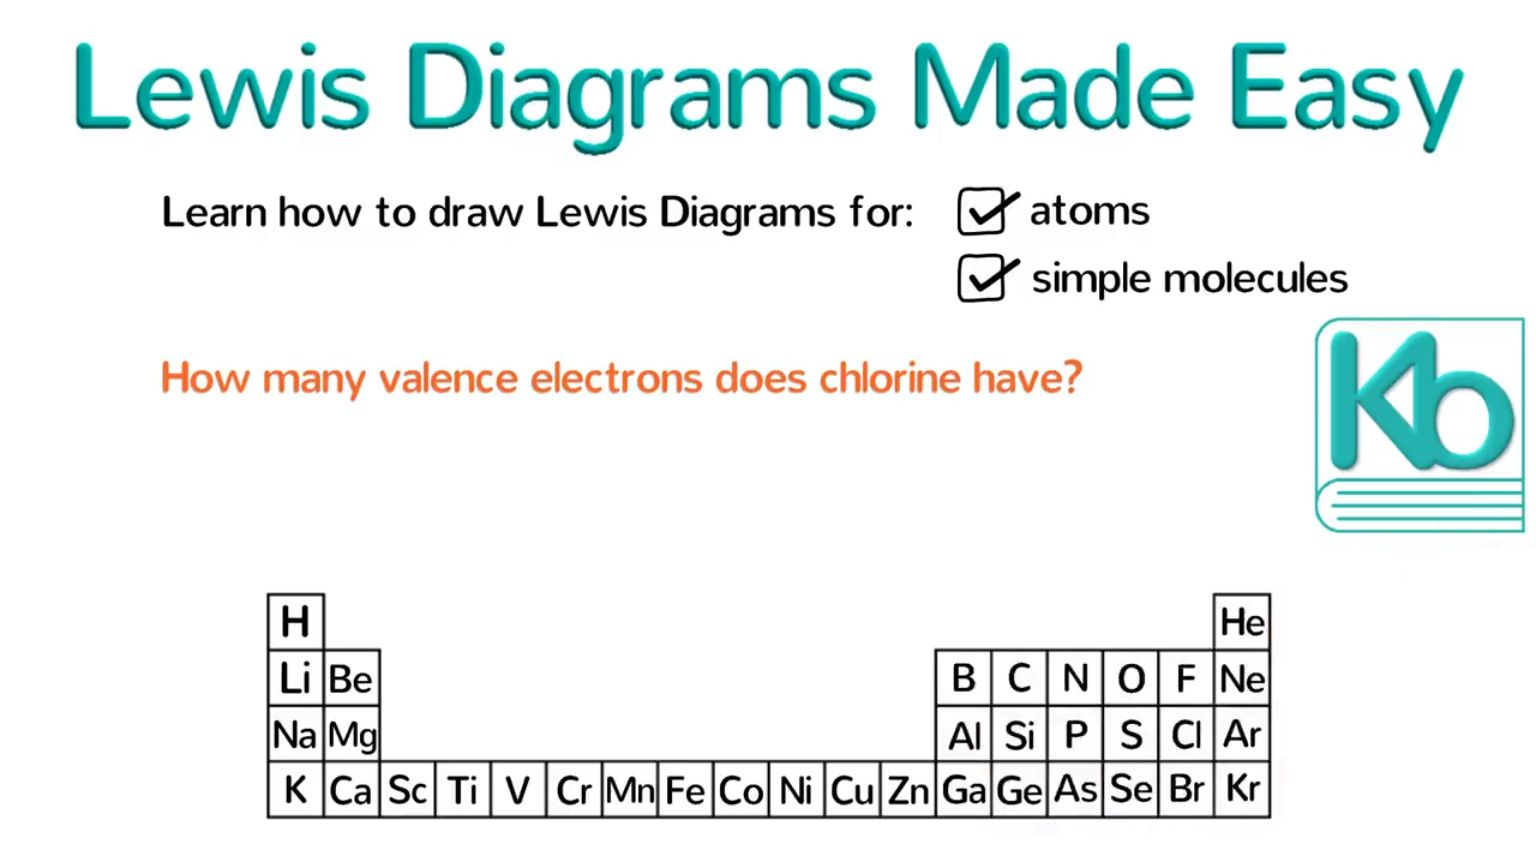 Lewis Diagrams Made Easy